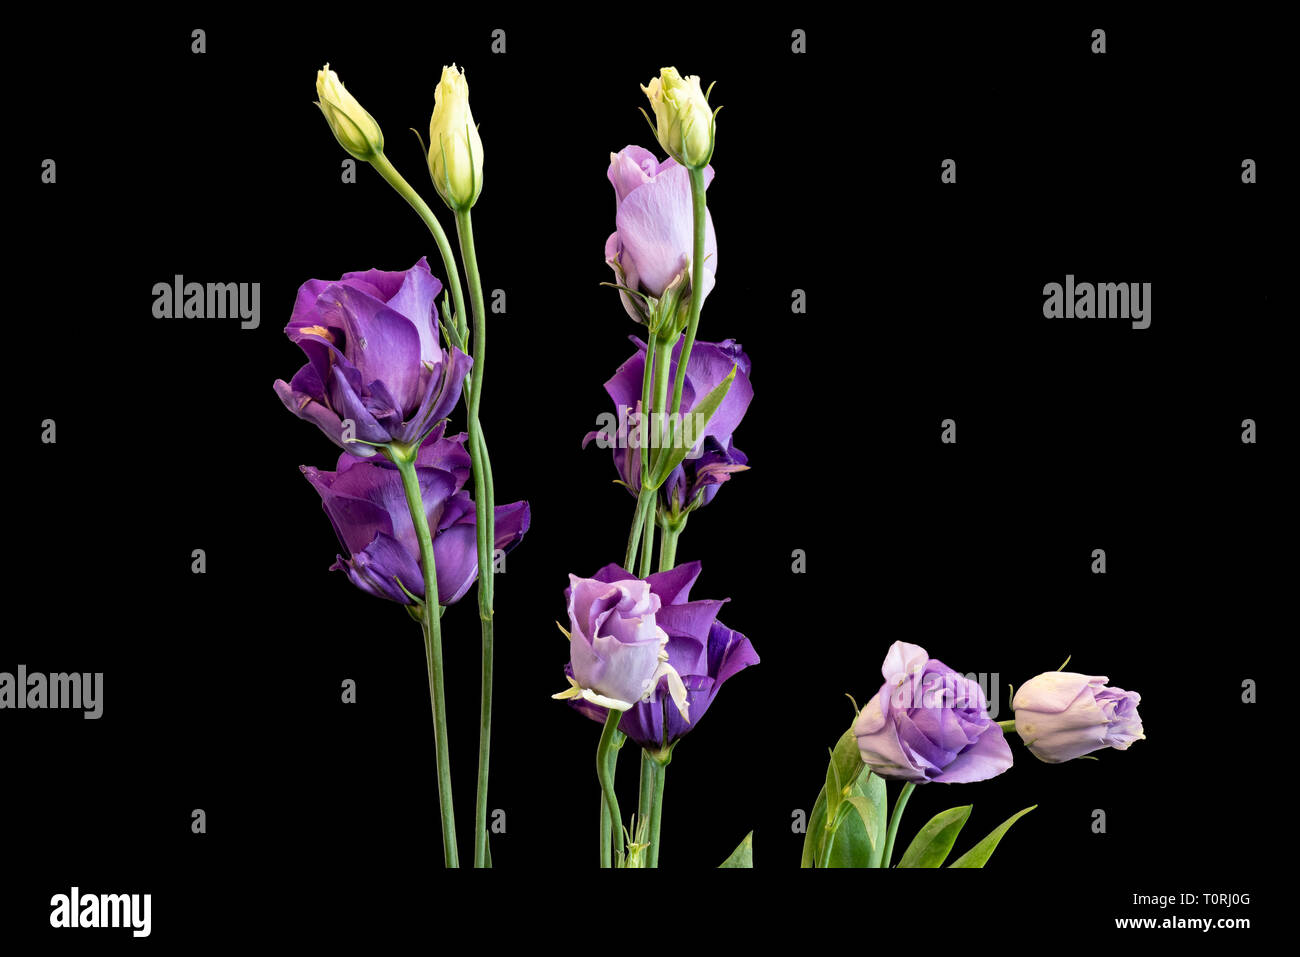 Fine art still life color macro of a bunch of violet blue lisianthus / showy prairie gentian / texas bluebell blossoms on black background - Stock Image